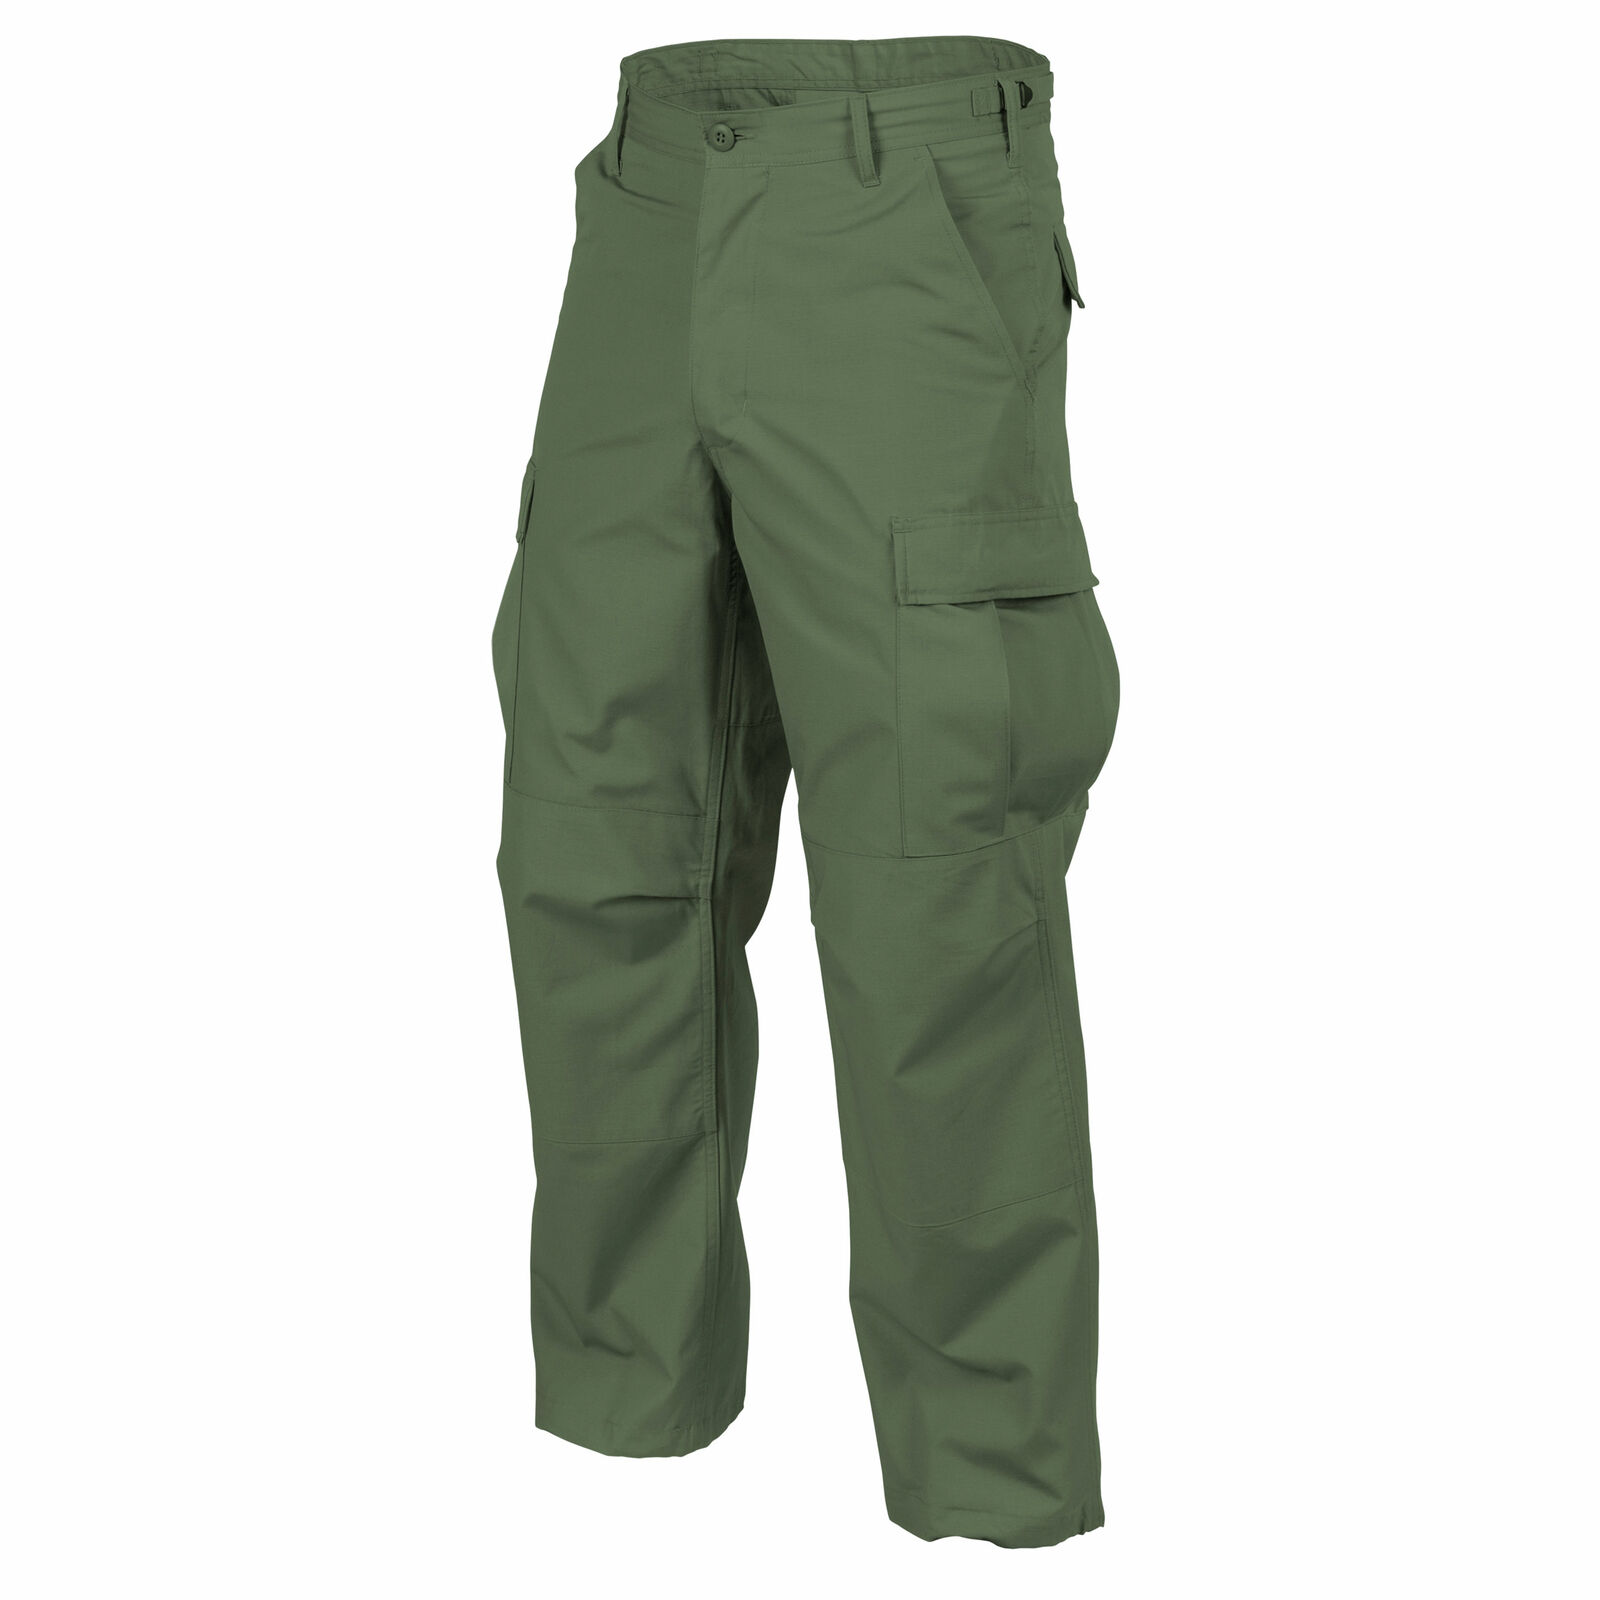 Helikon Tex Bdu Pants Olive Green Cargo Pants Ripstop Army Uniform Trouser Pants